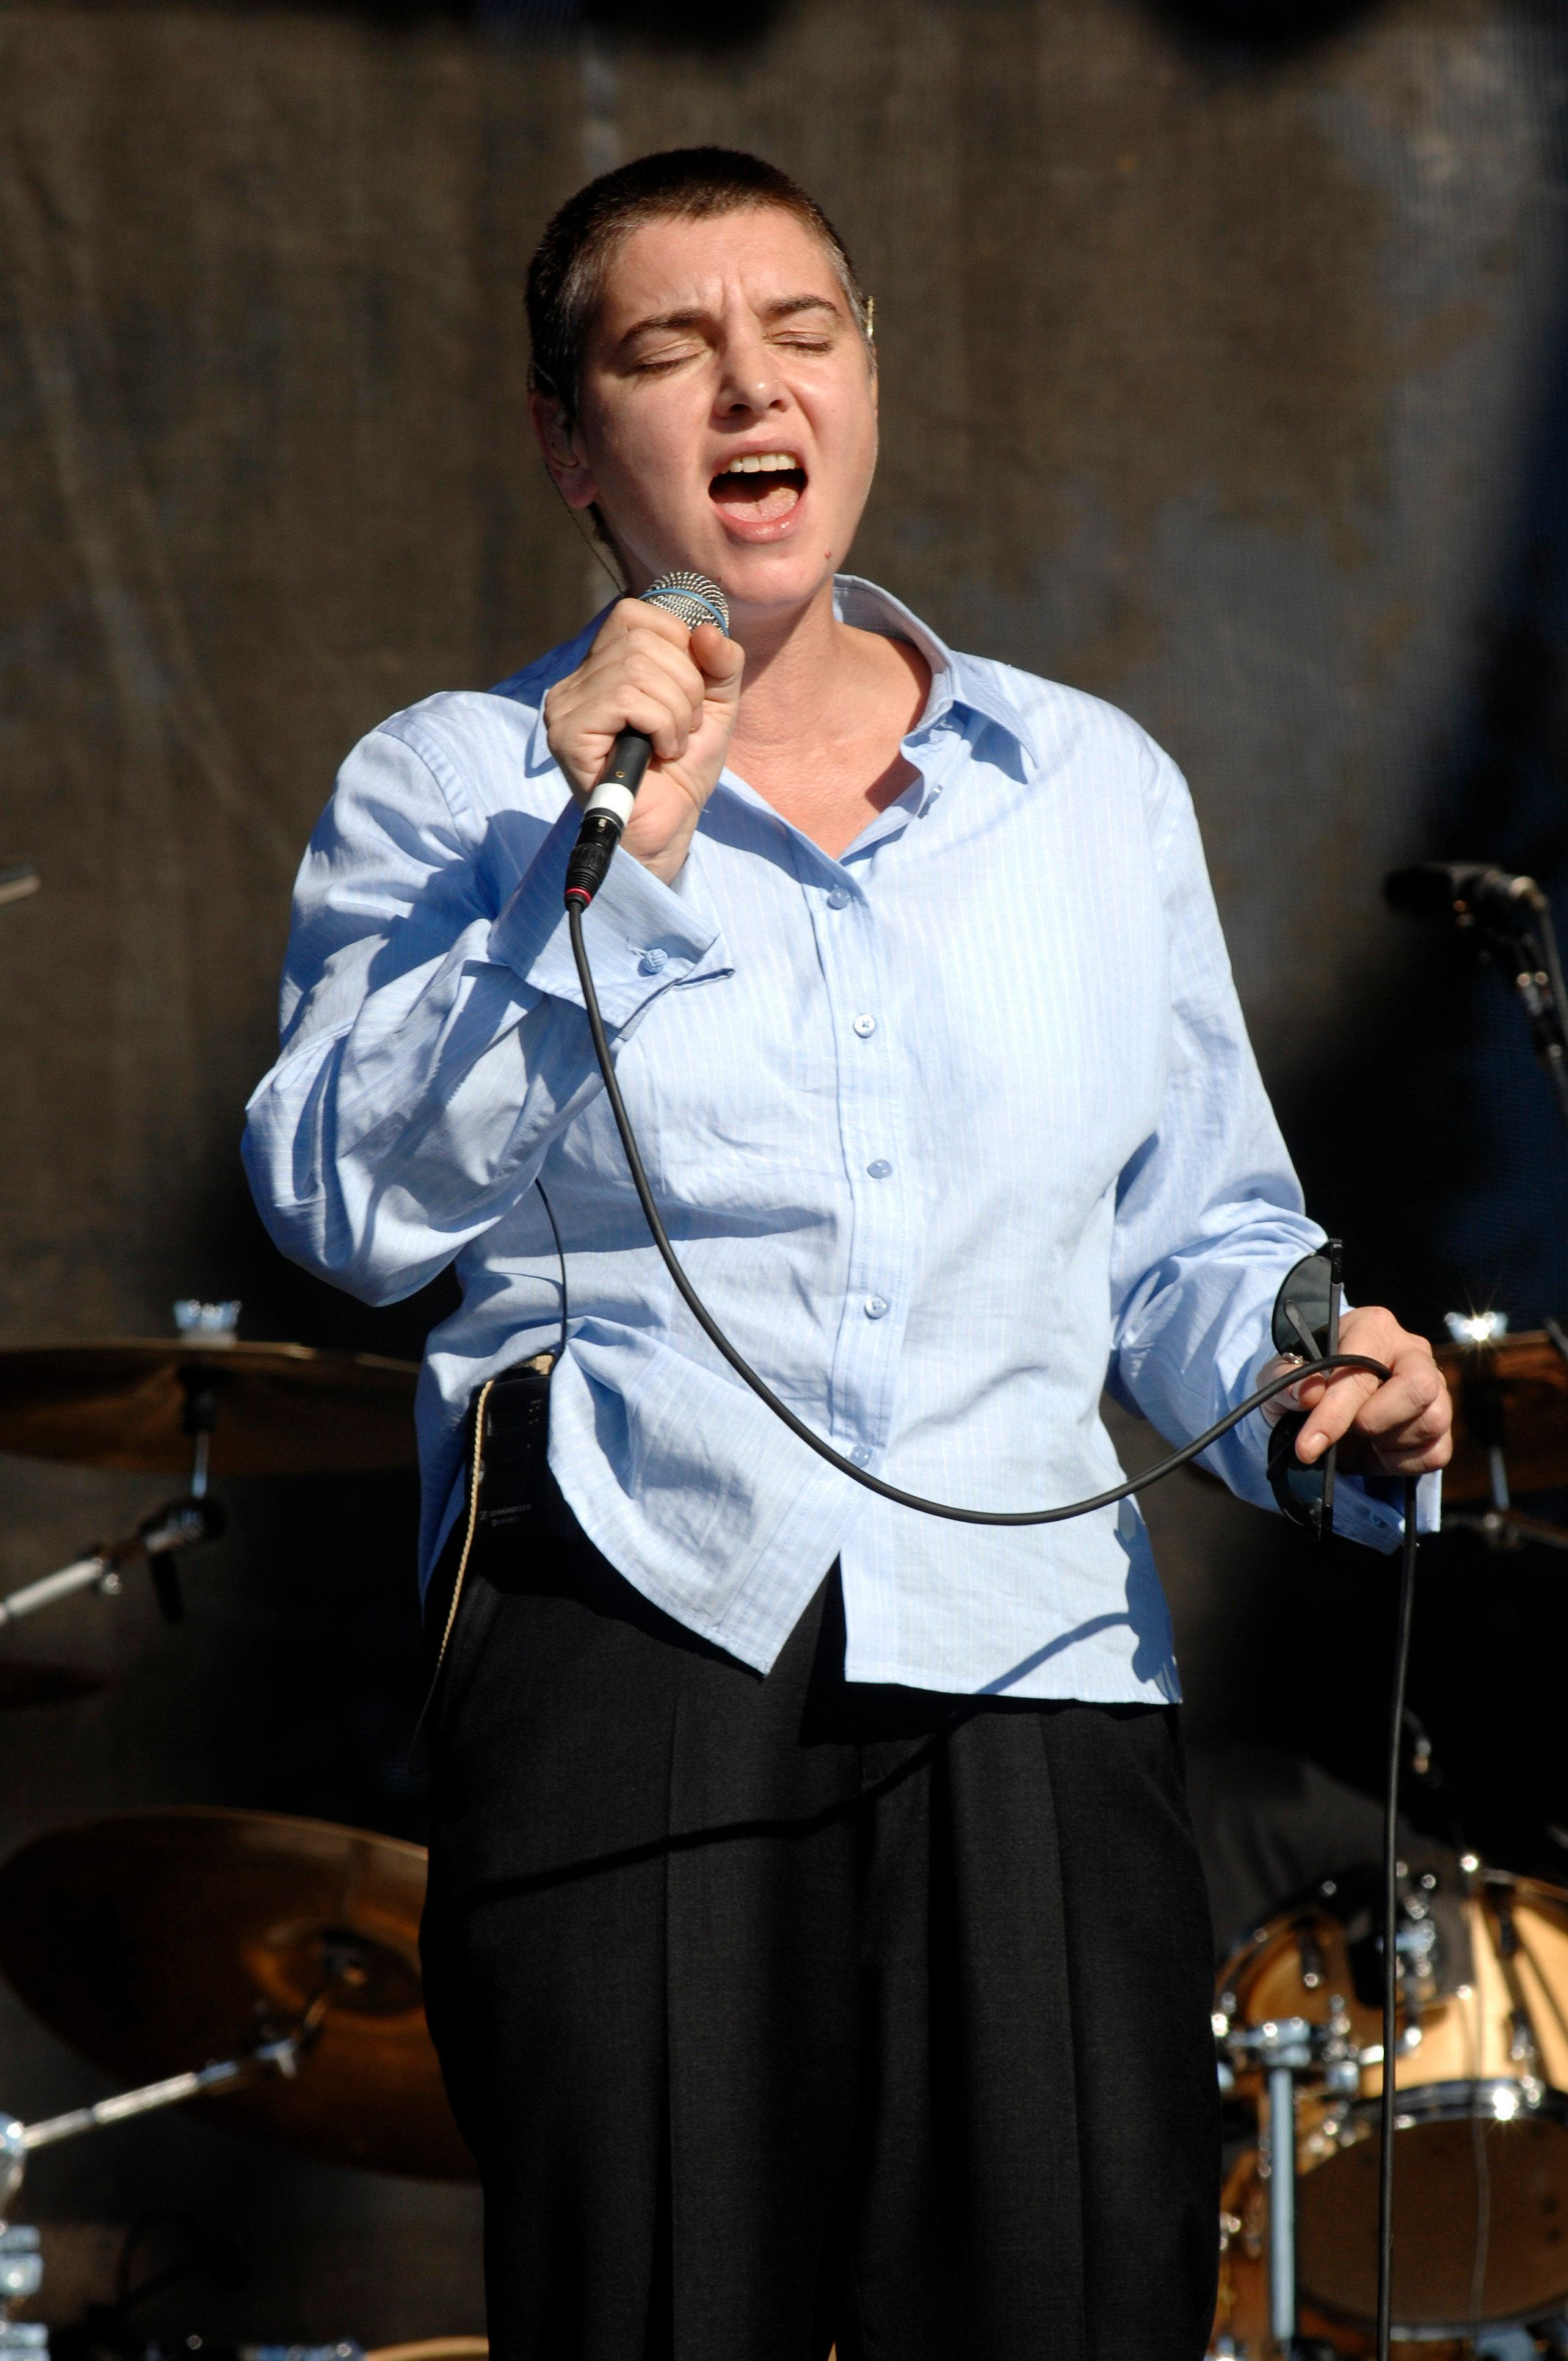 Sinead O'Connor performing live at the 2007 Voodoo Music Experience festival in New Orleans, Louisiana on October 27, 2007. © Atlas / MediaPunch/IPX